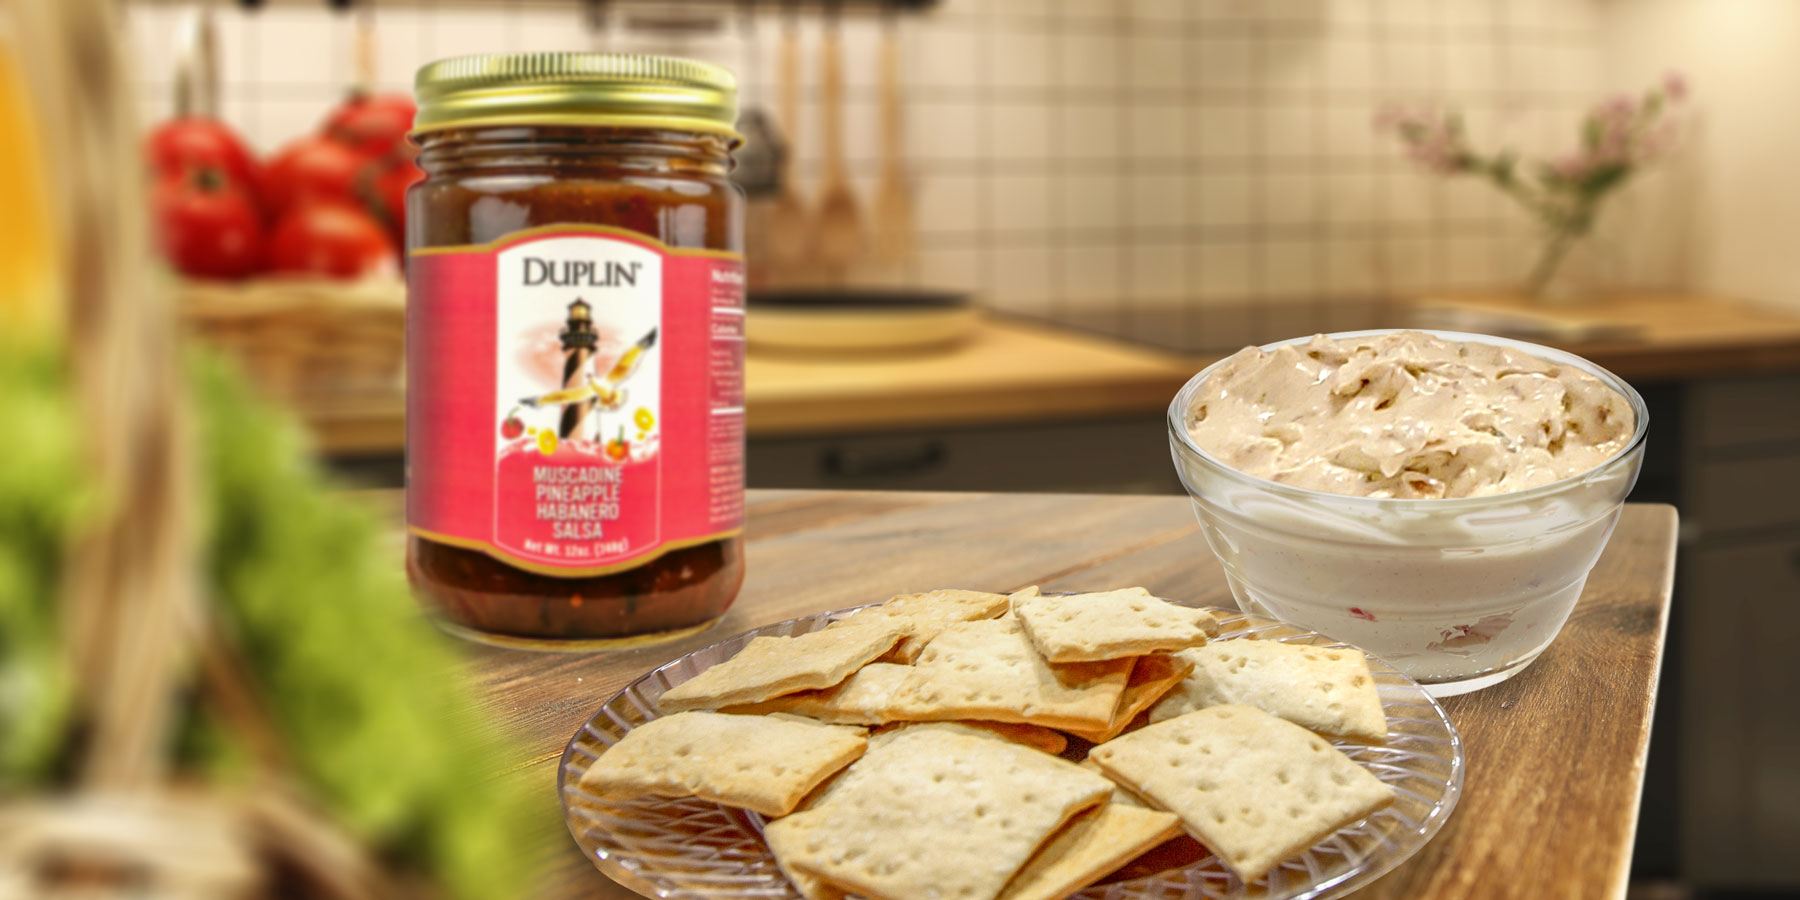 """Duplin """"Dine & Wine"""" host Frank adds bacon to our famous cheese dip."""